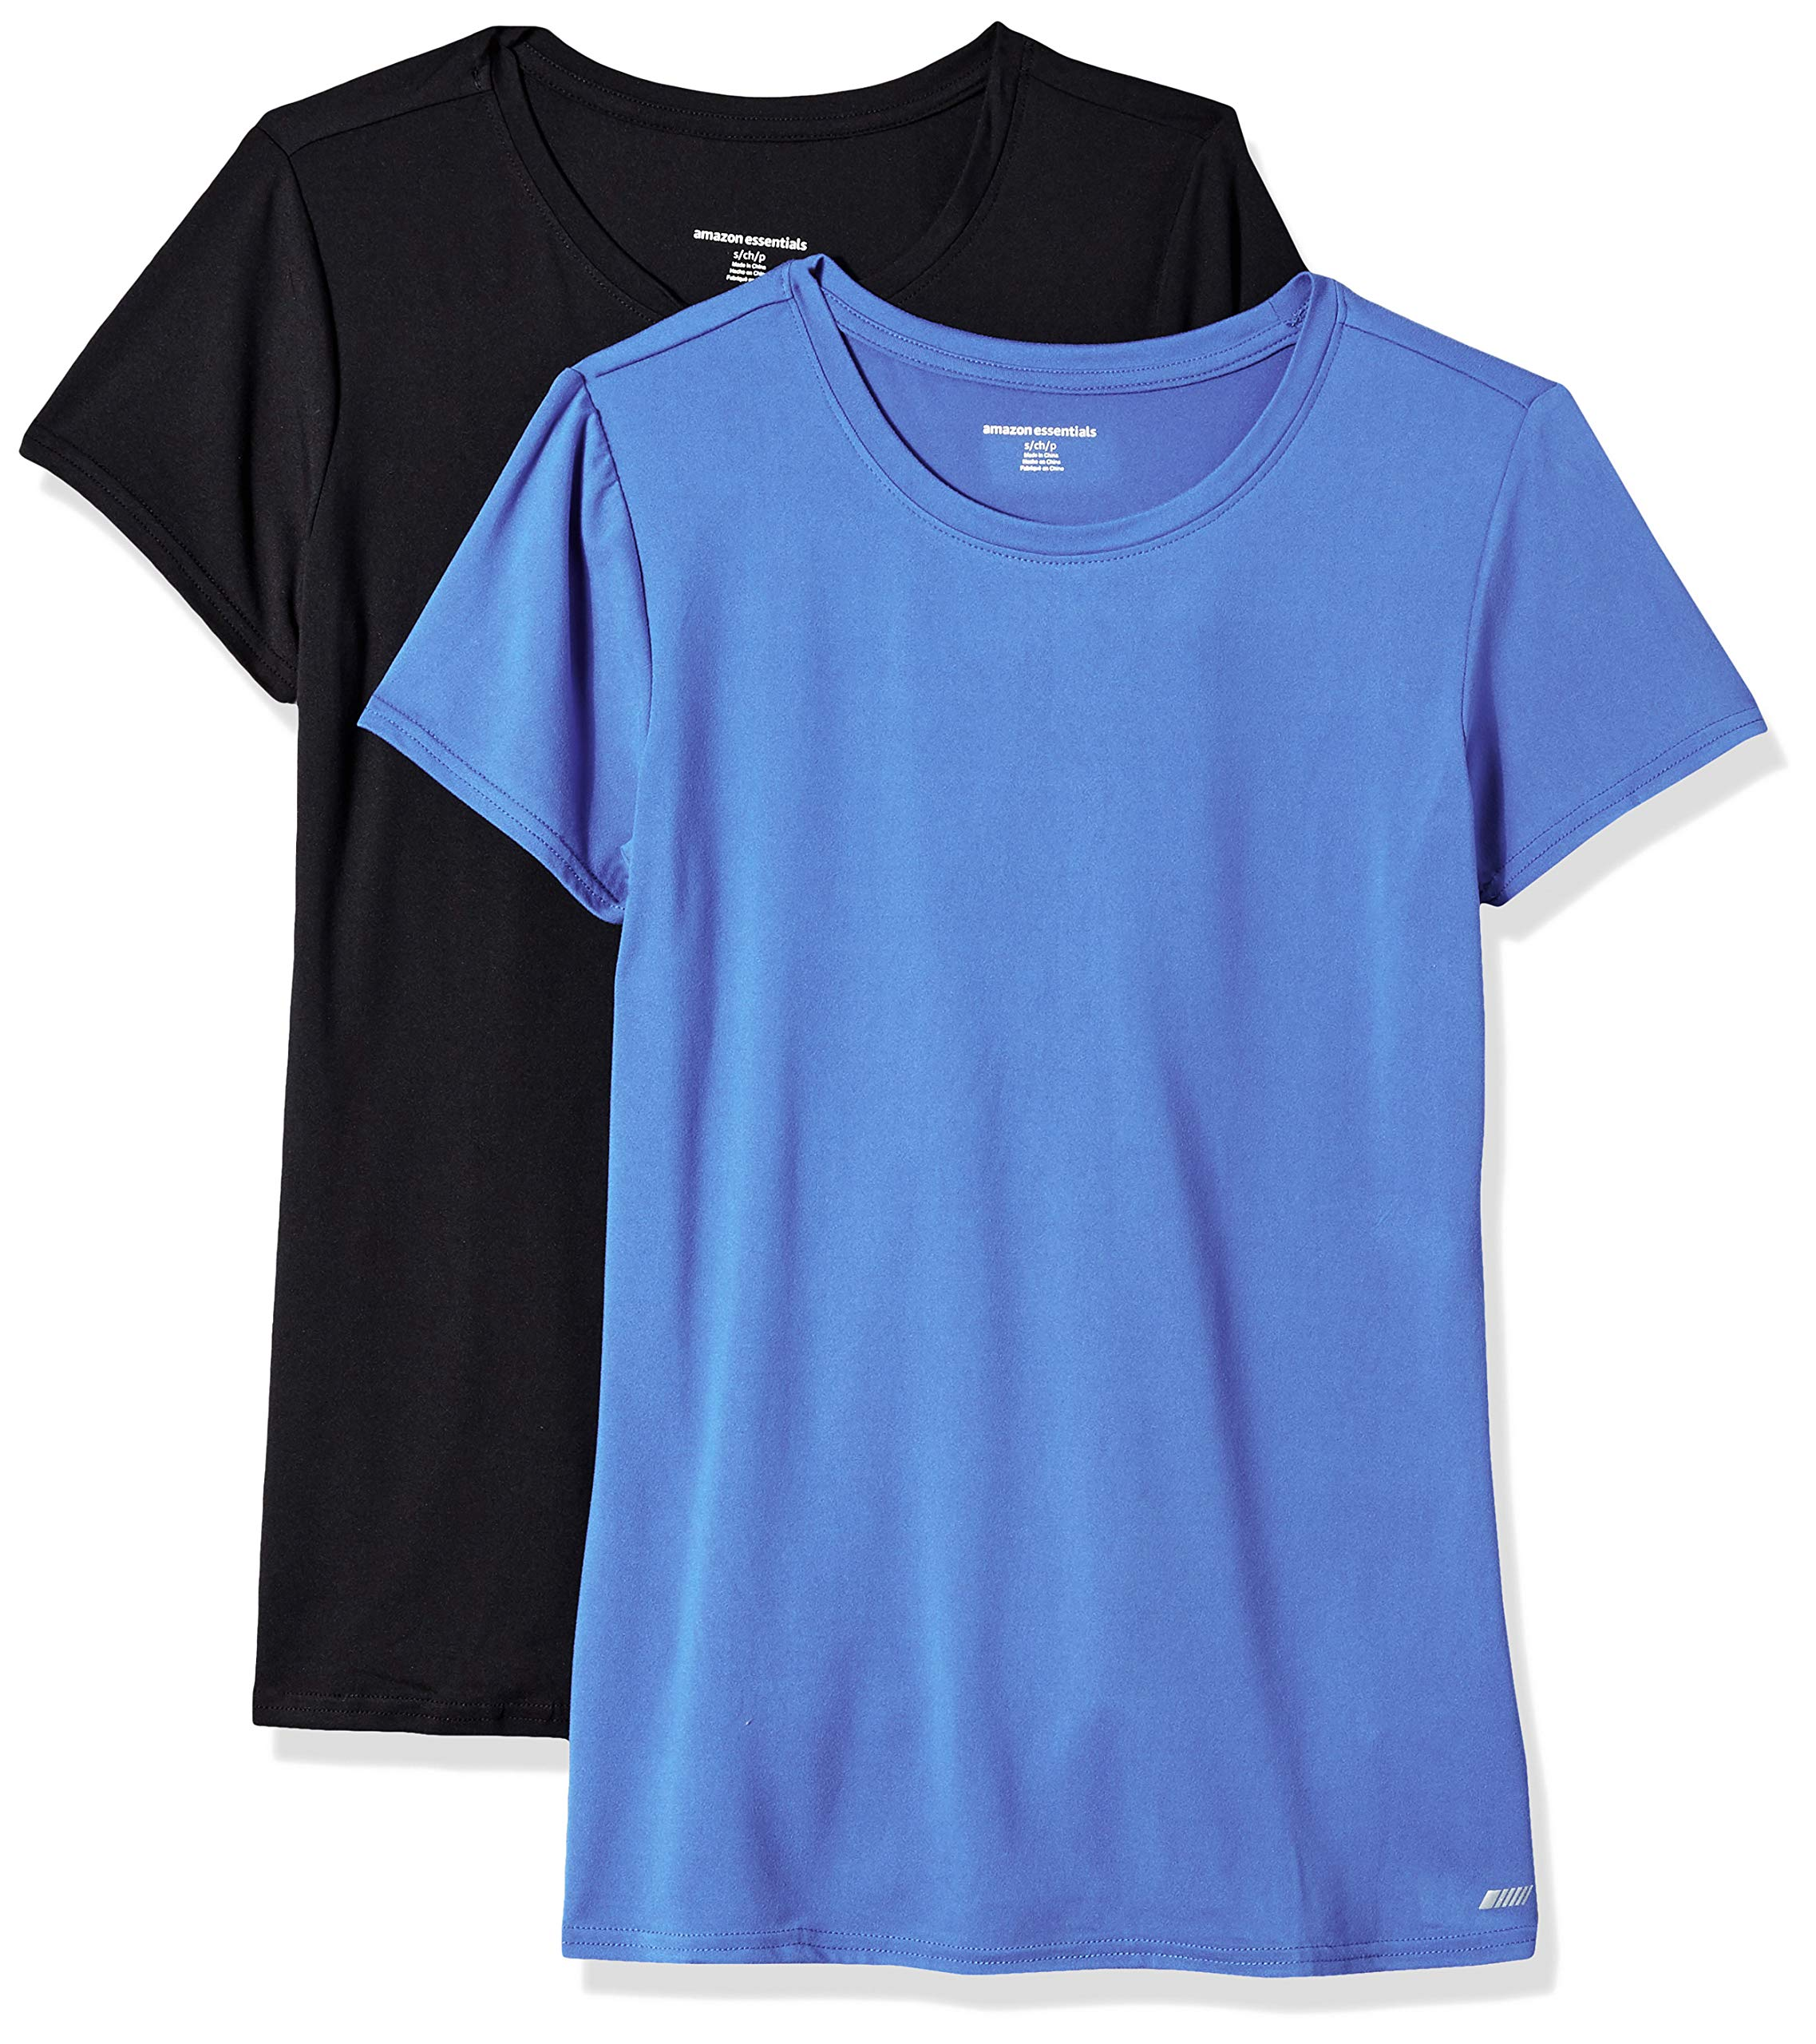 Amazon Essentials Women's 2-Pack Tech Stretch Short-Sleeve Crewneck T-Shirt, -bright blue/black, X-Small by Amazon Essentials (Image #1)